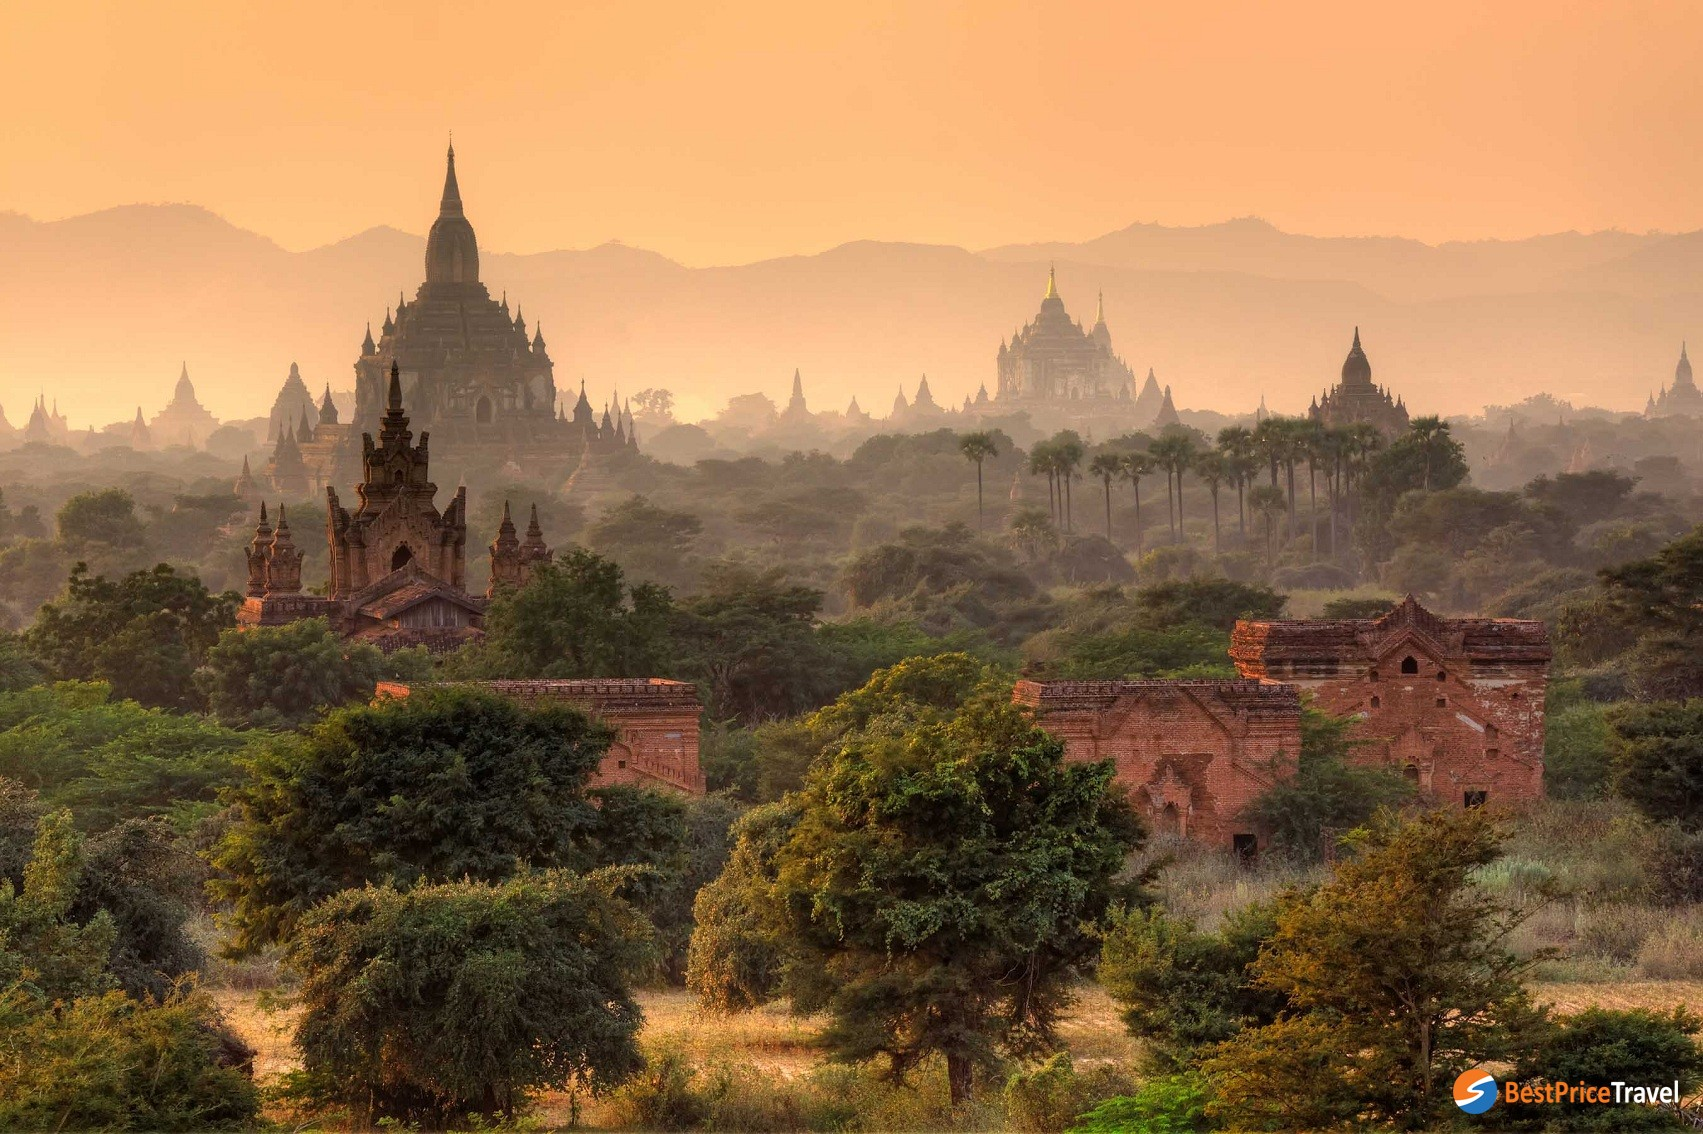 the ground of the Plain of Bagan - a mysterious ancient city in Myanmar